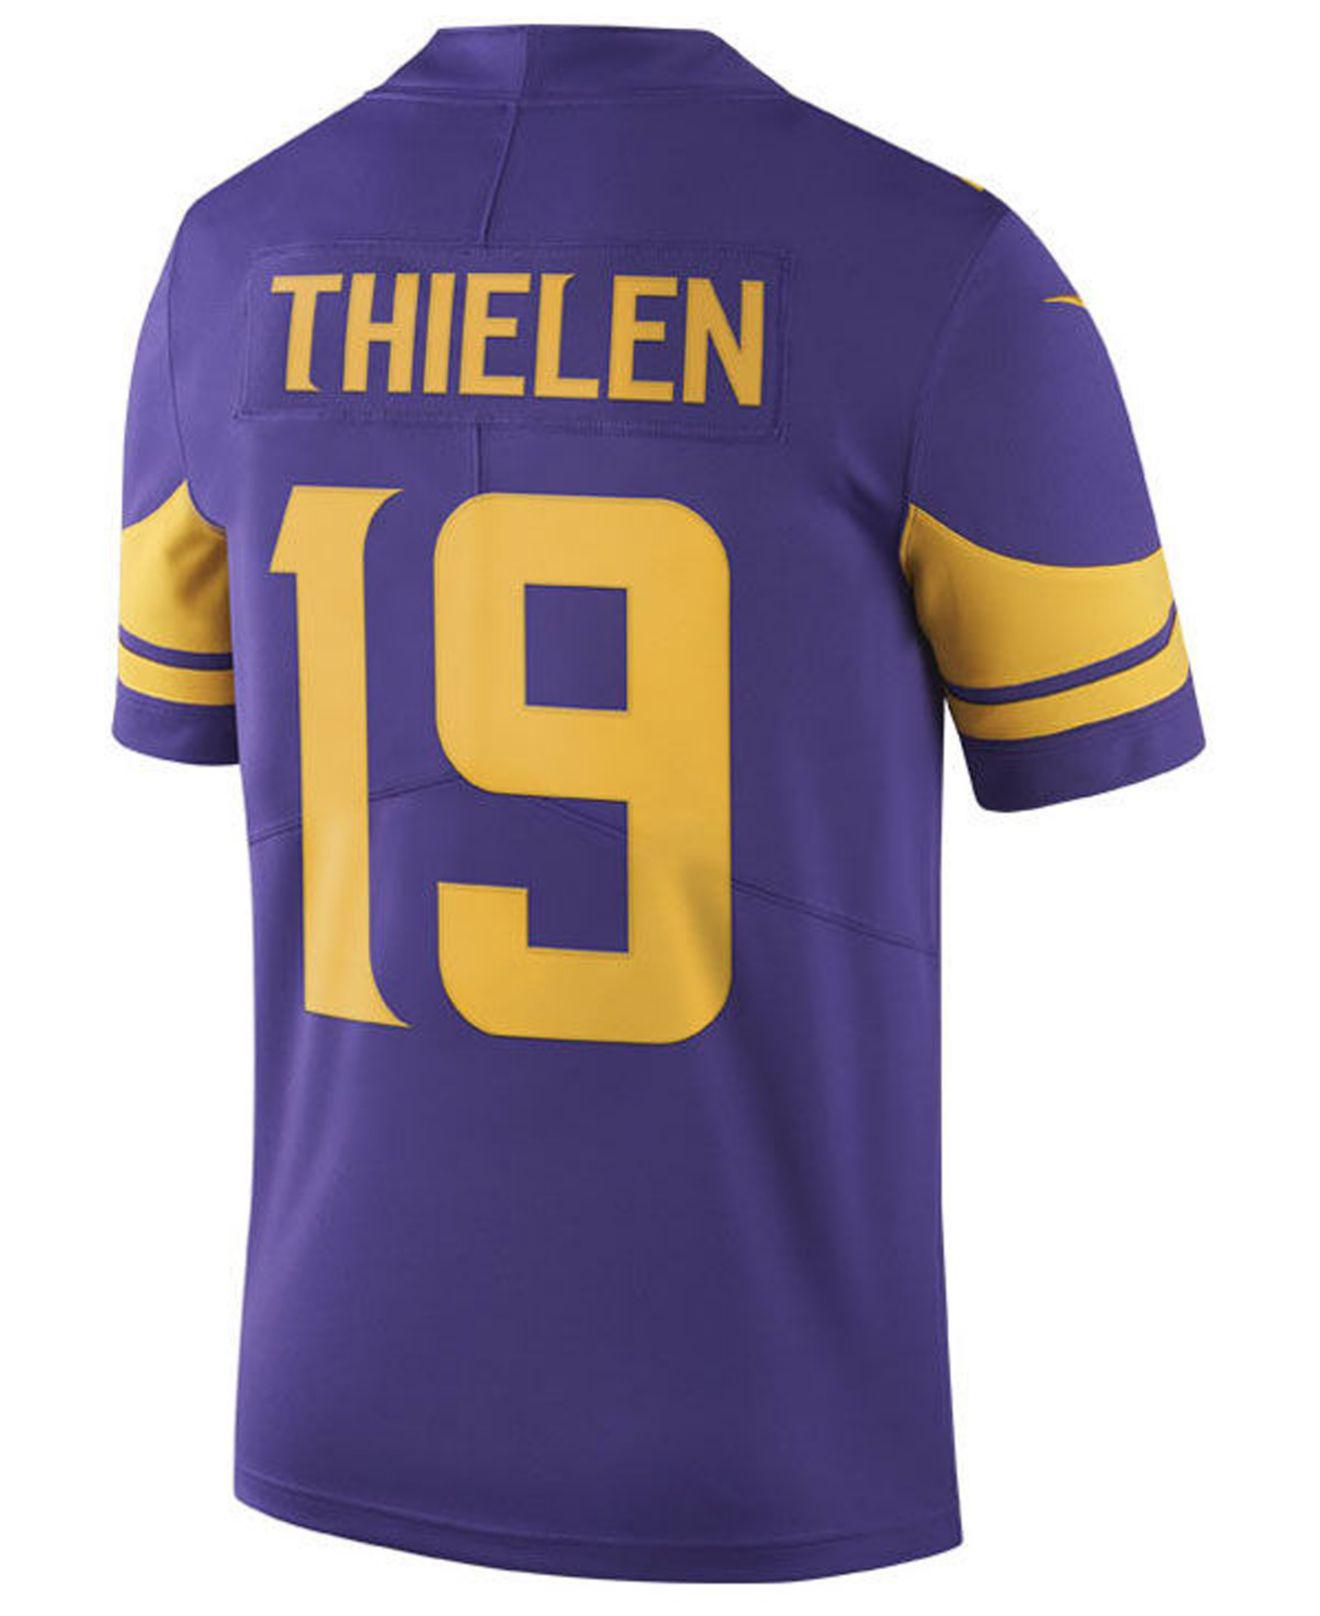 Lyst - Nike Adam Thielen Minnesota Vikings Limited Color Rush Jersey in  Purple for Men e02863ecc